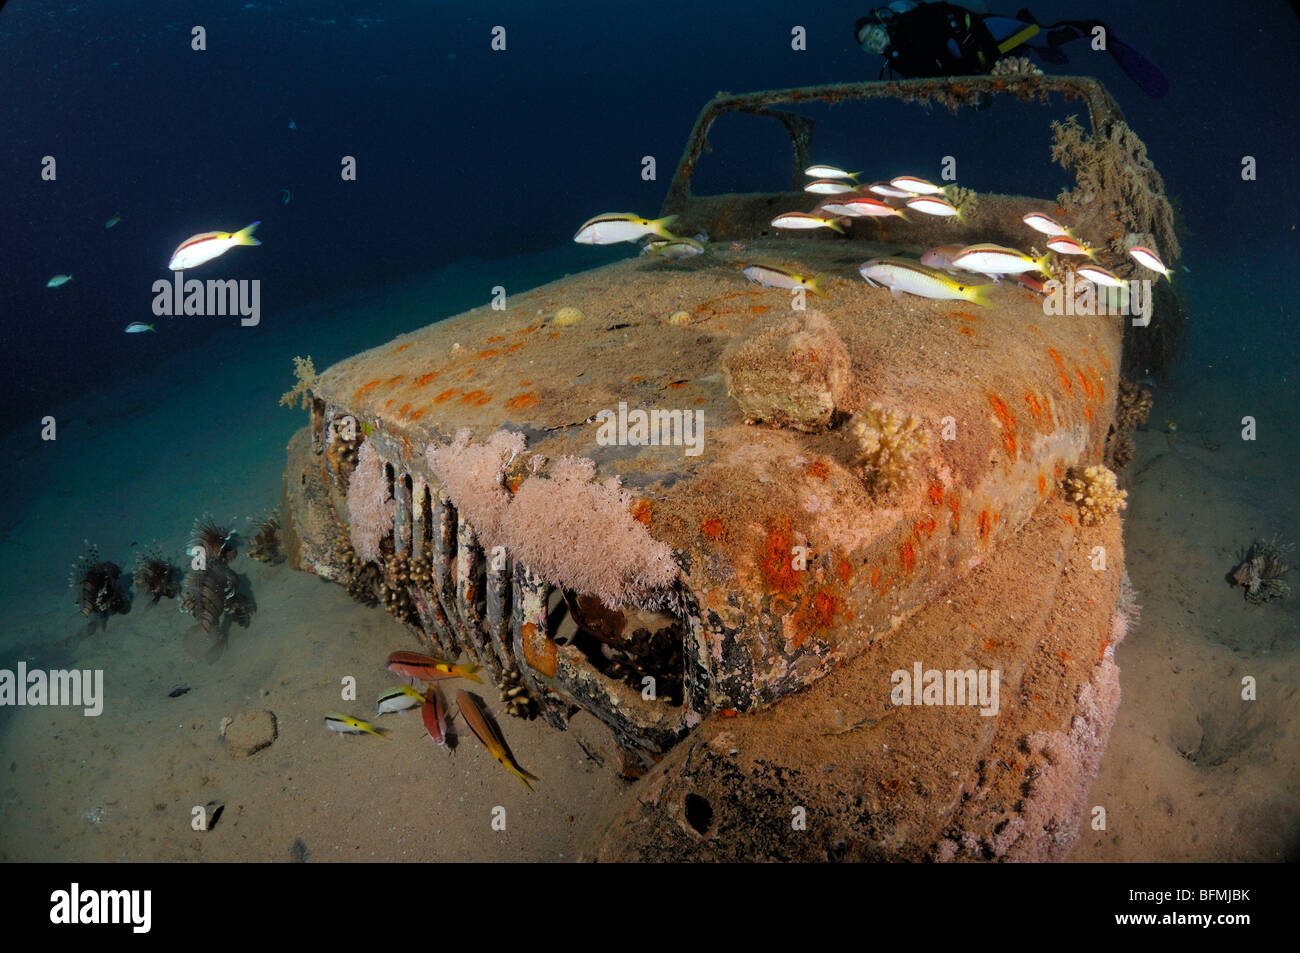 Underwater wreck of car in tropical water, Nuweiba, 'Red Sea', Egypt - Stock Image